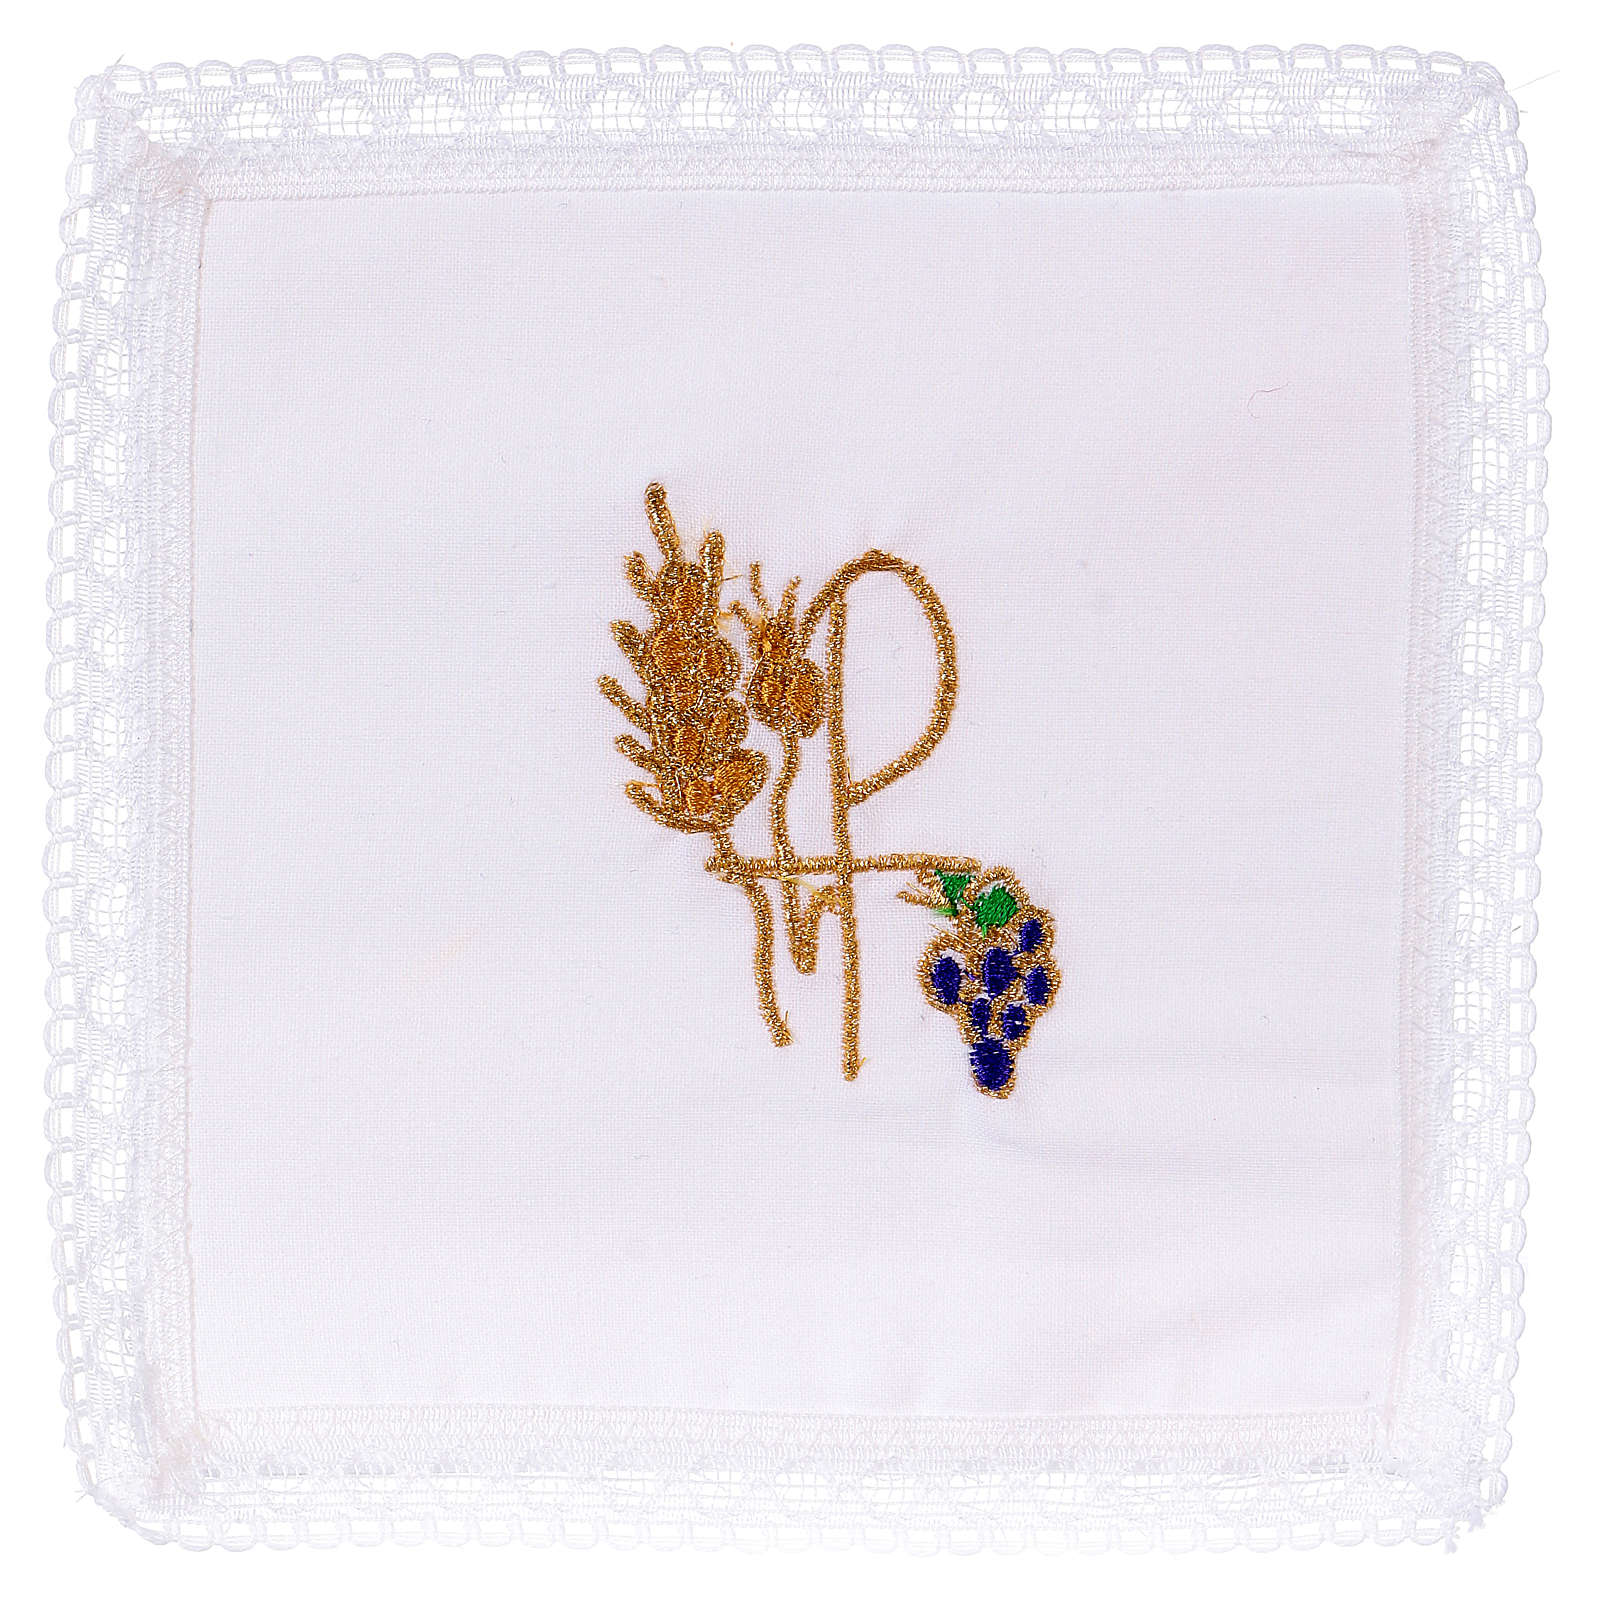 Chalice veil (pall) with Xp symbol 100% cotton 4